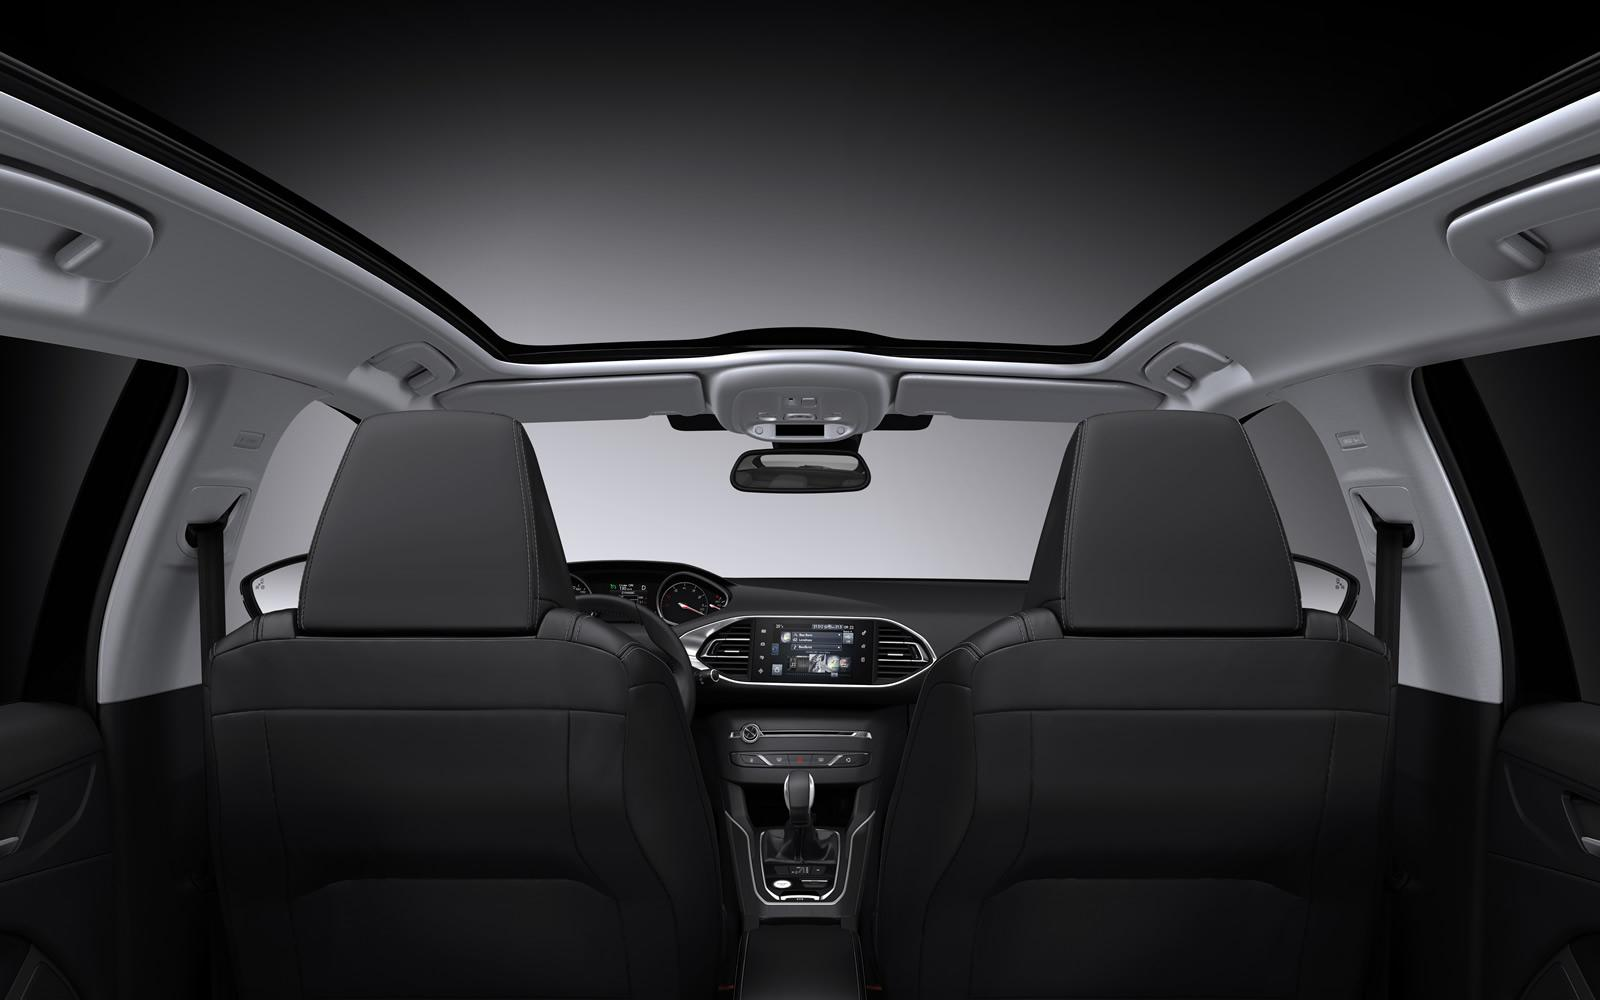 peugeot 308 sw revealed with 610 liters of cargo space autoevolution. Black Bedroom Furniture Sets. Home Design Ideas